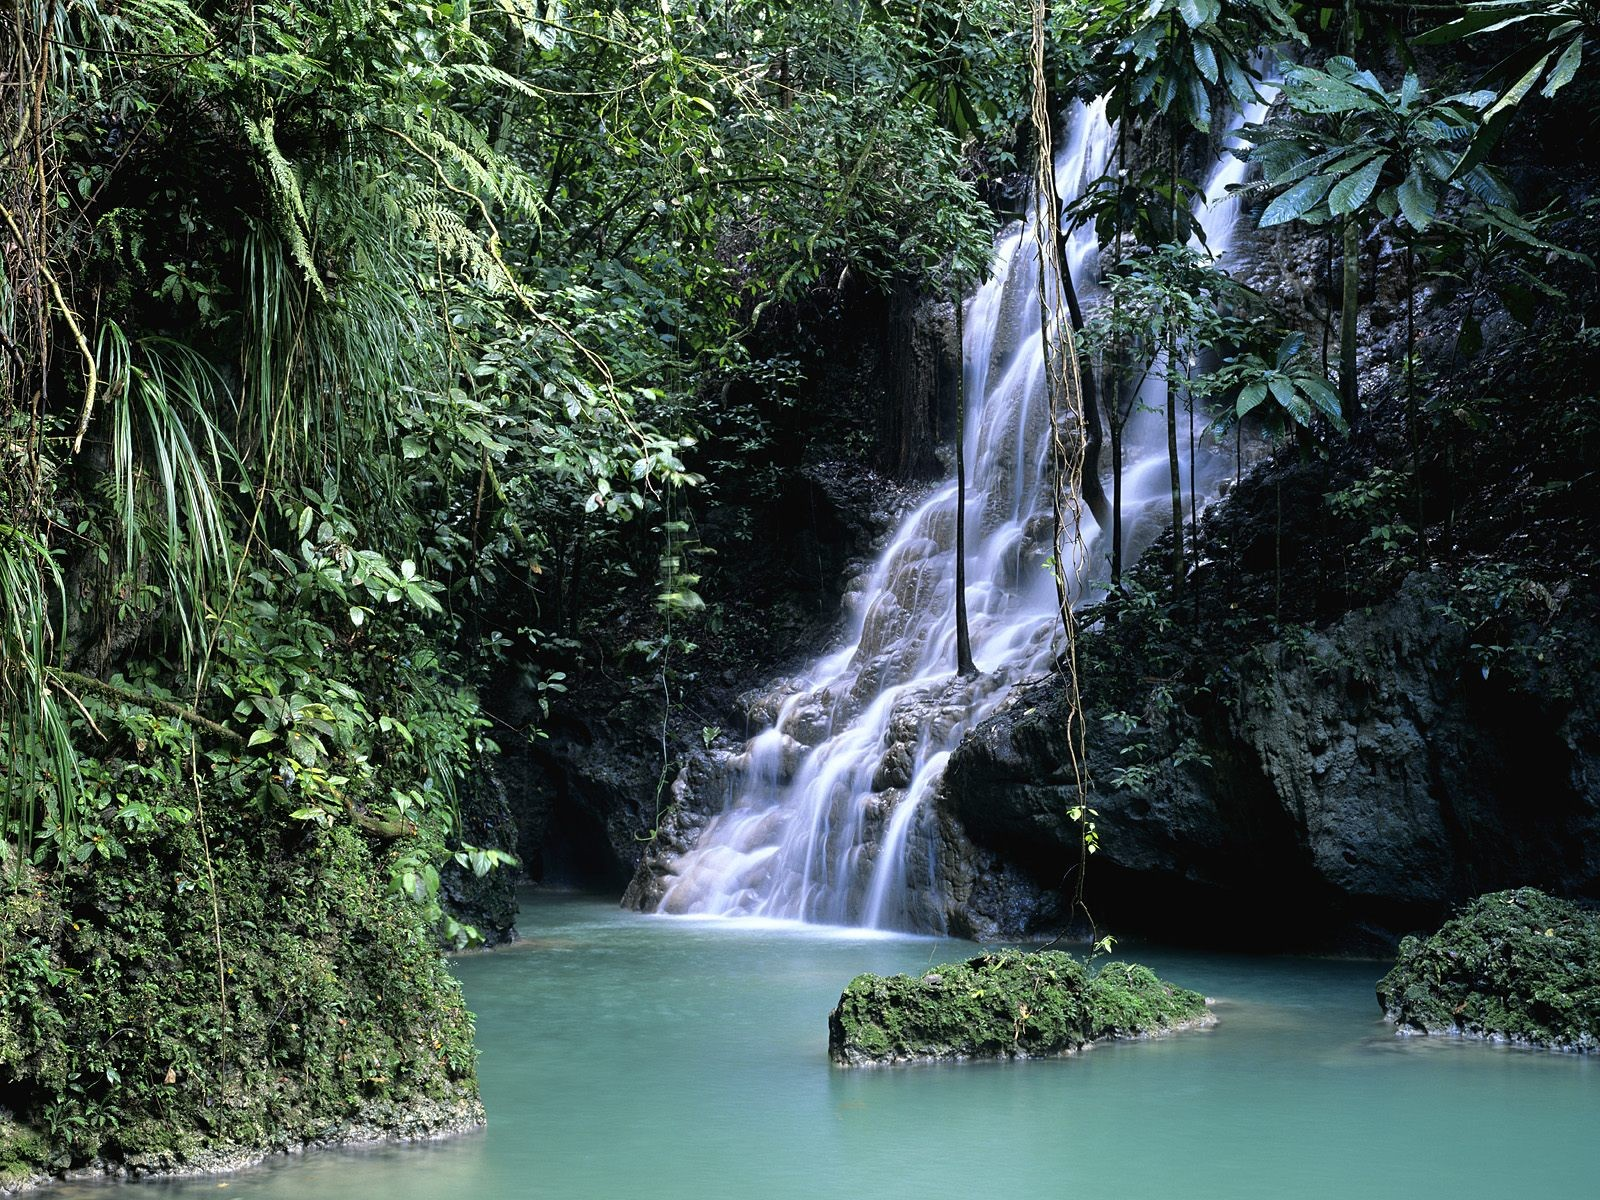 Forest Jamaica Wallpaper 1600x1200 Forest Jamaica Waterfalls 1600x1200